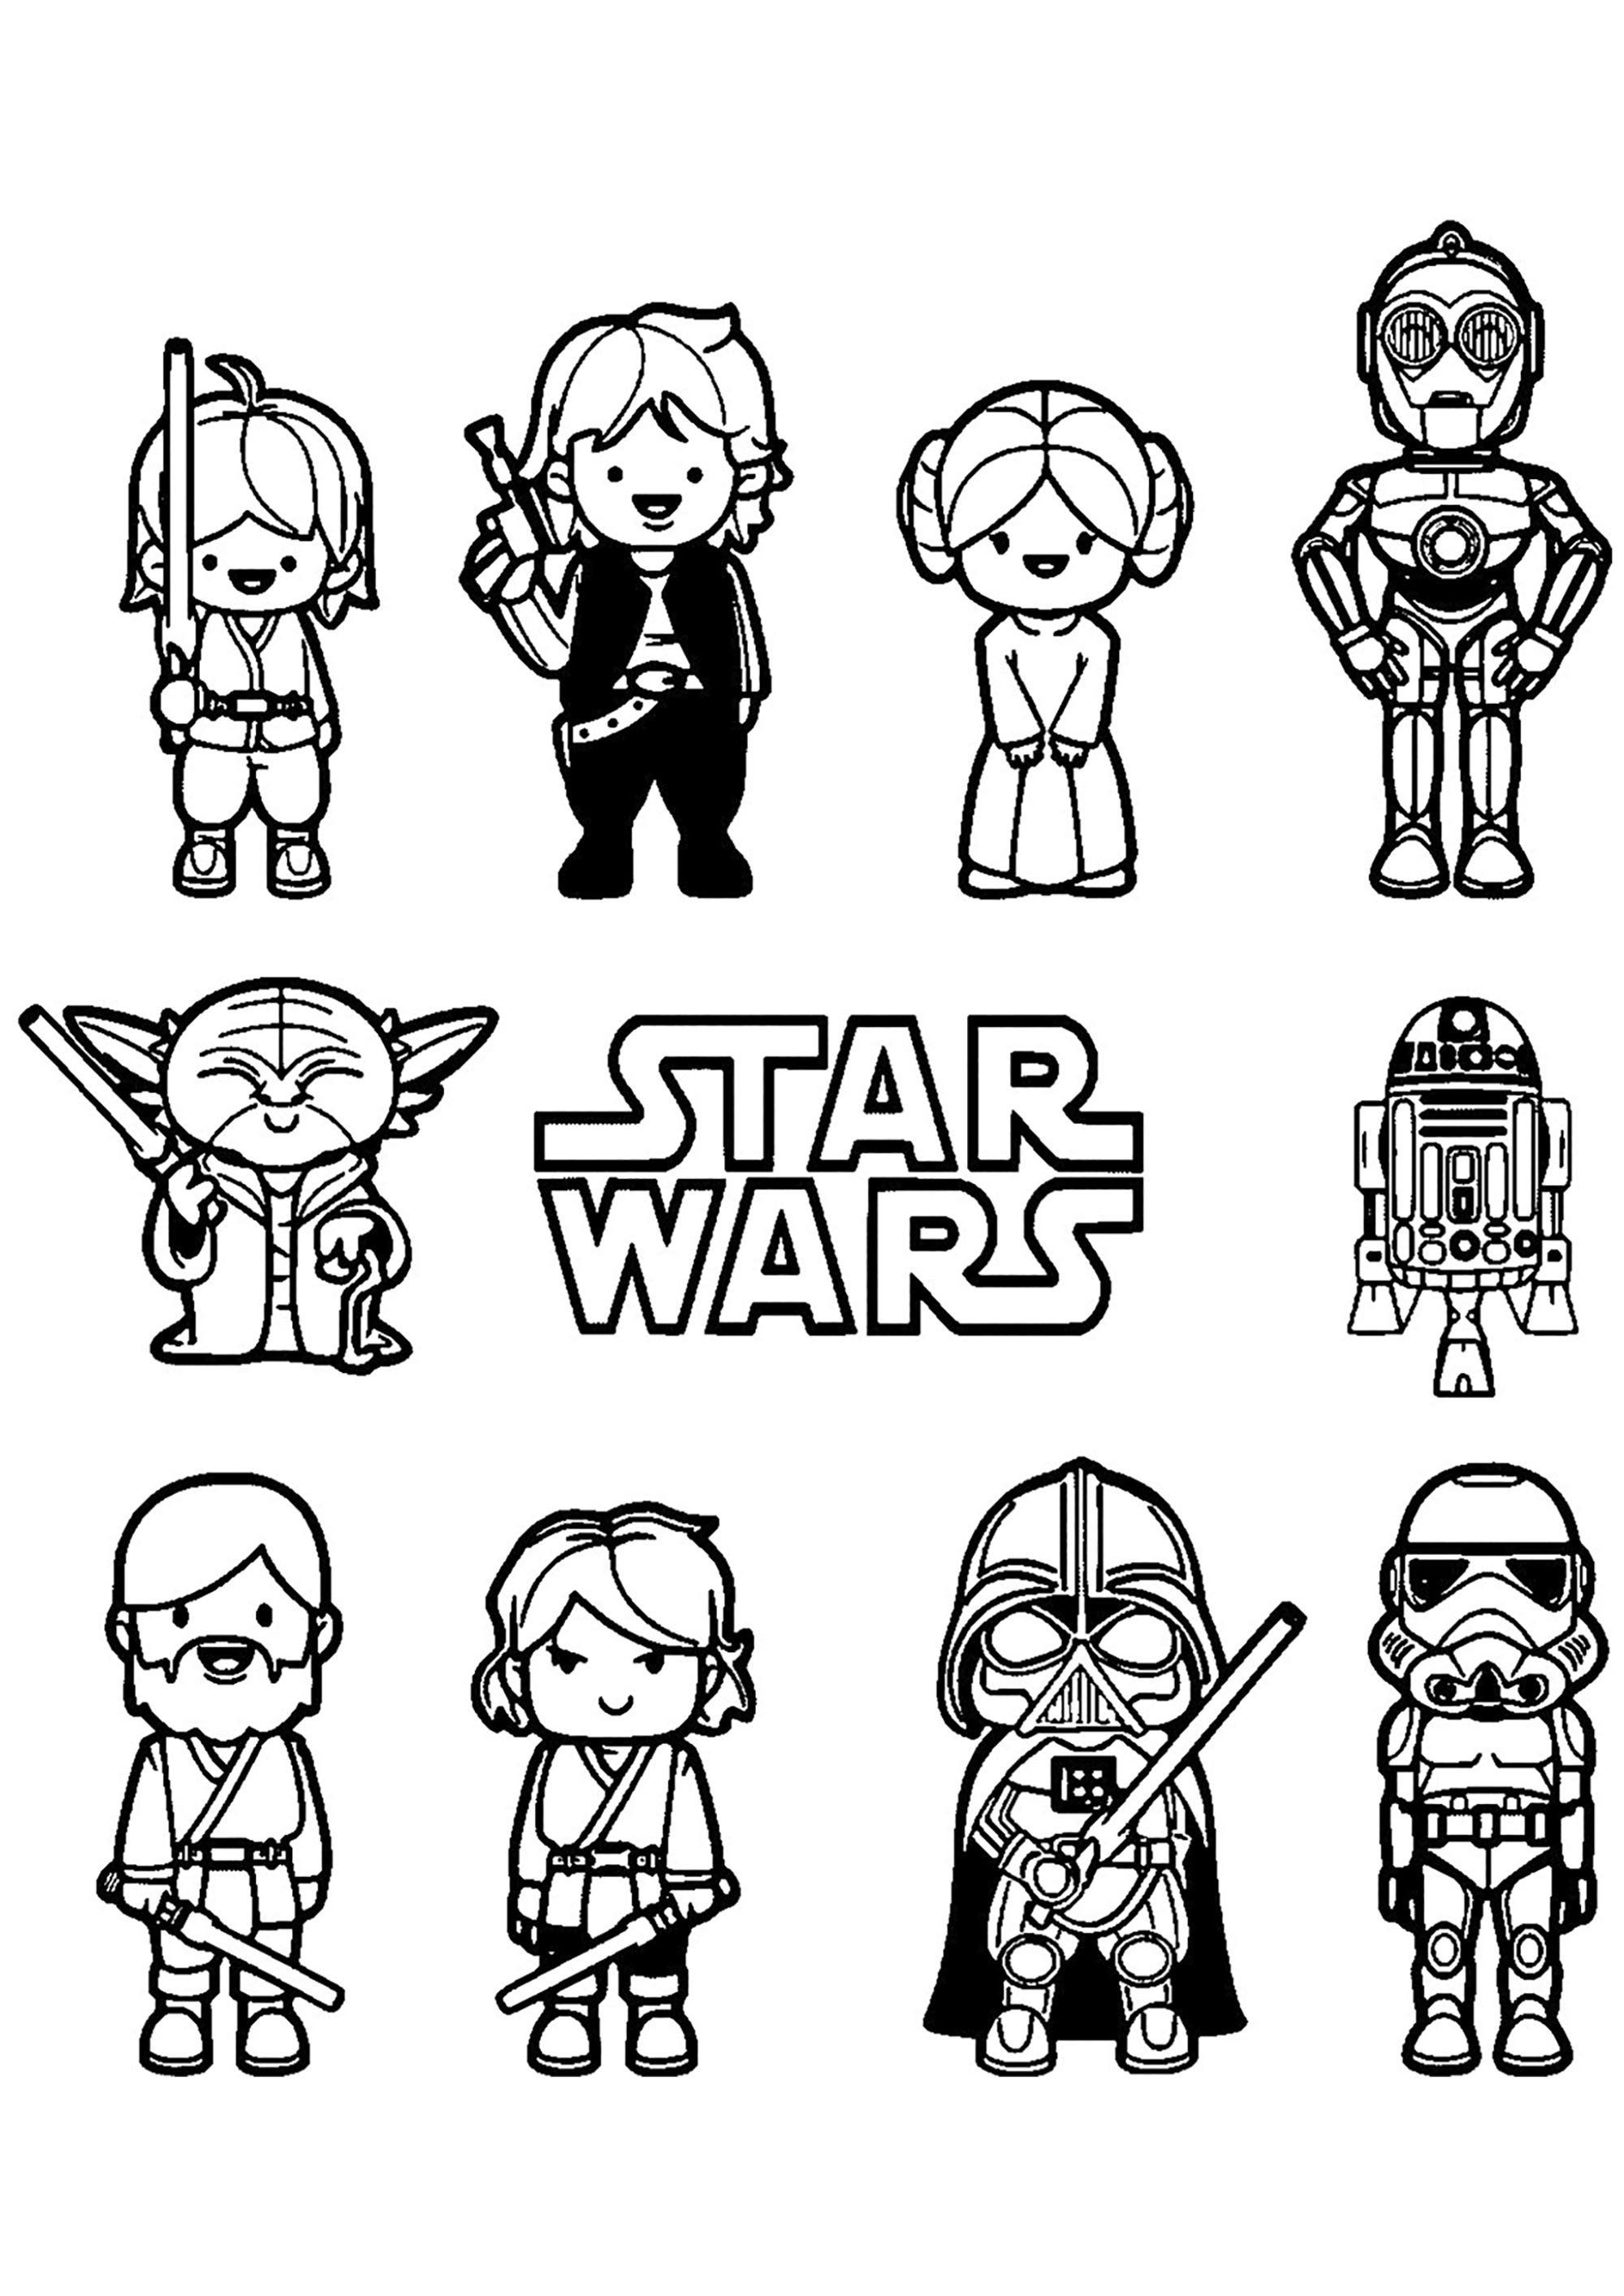 Star Wars Coloring Pages Beautiful Star Wars Coloring Einzigartig Star Wars Free To Color For Star Wars Coloring Sheet Star Wars Colors Star Wars Cartoon